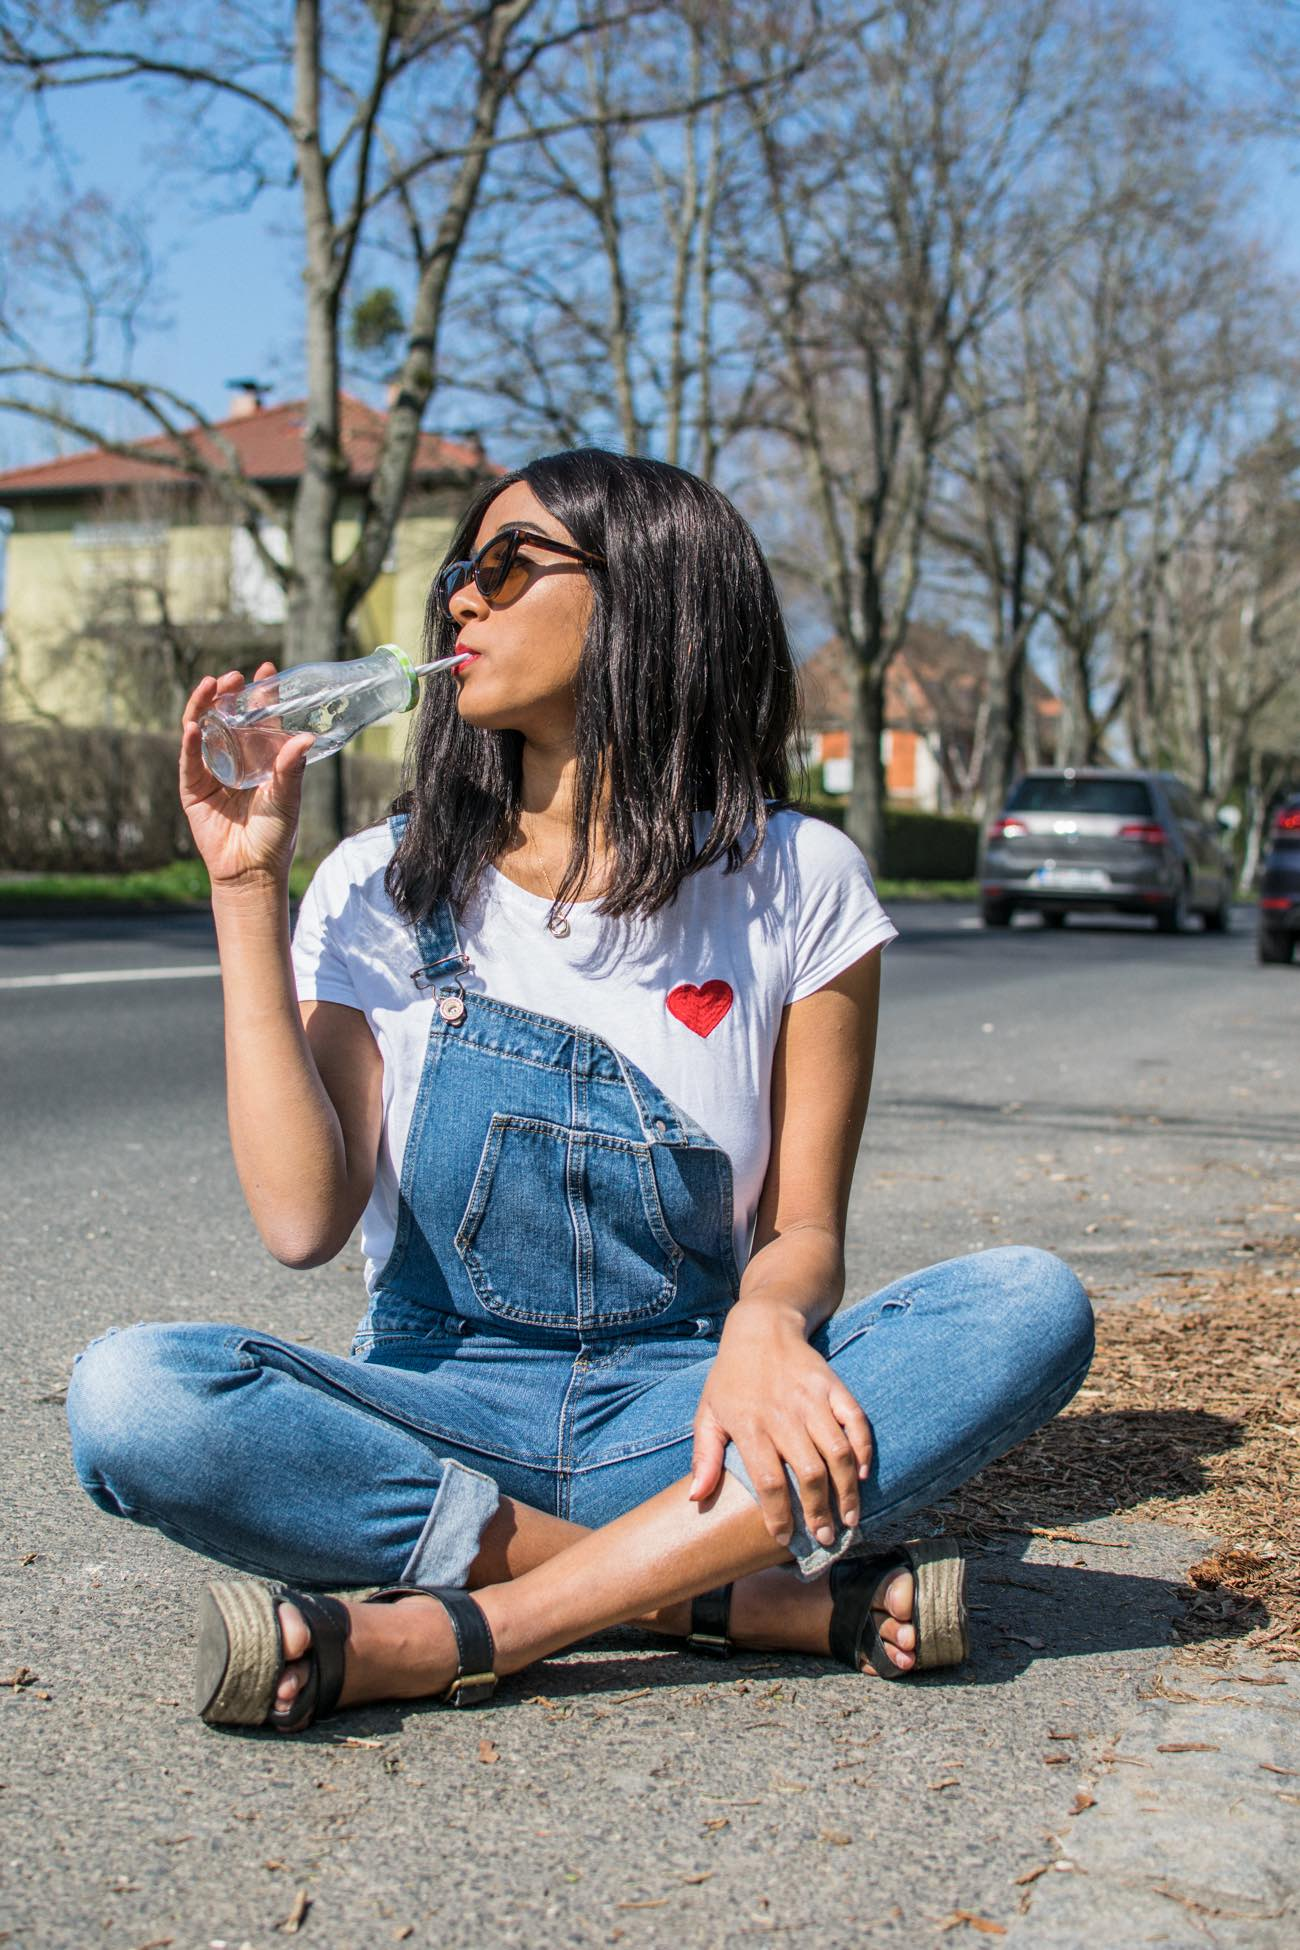 Social Good, Save water, Charity, Girl in dungarees